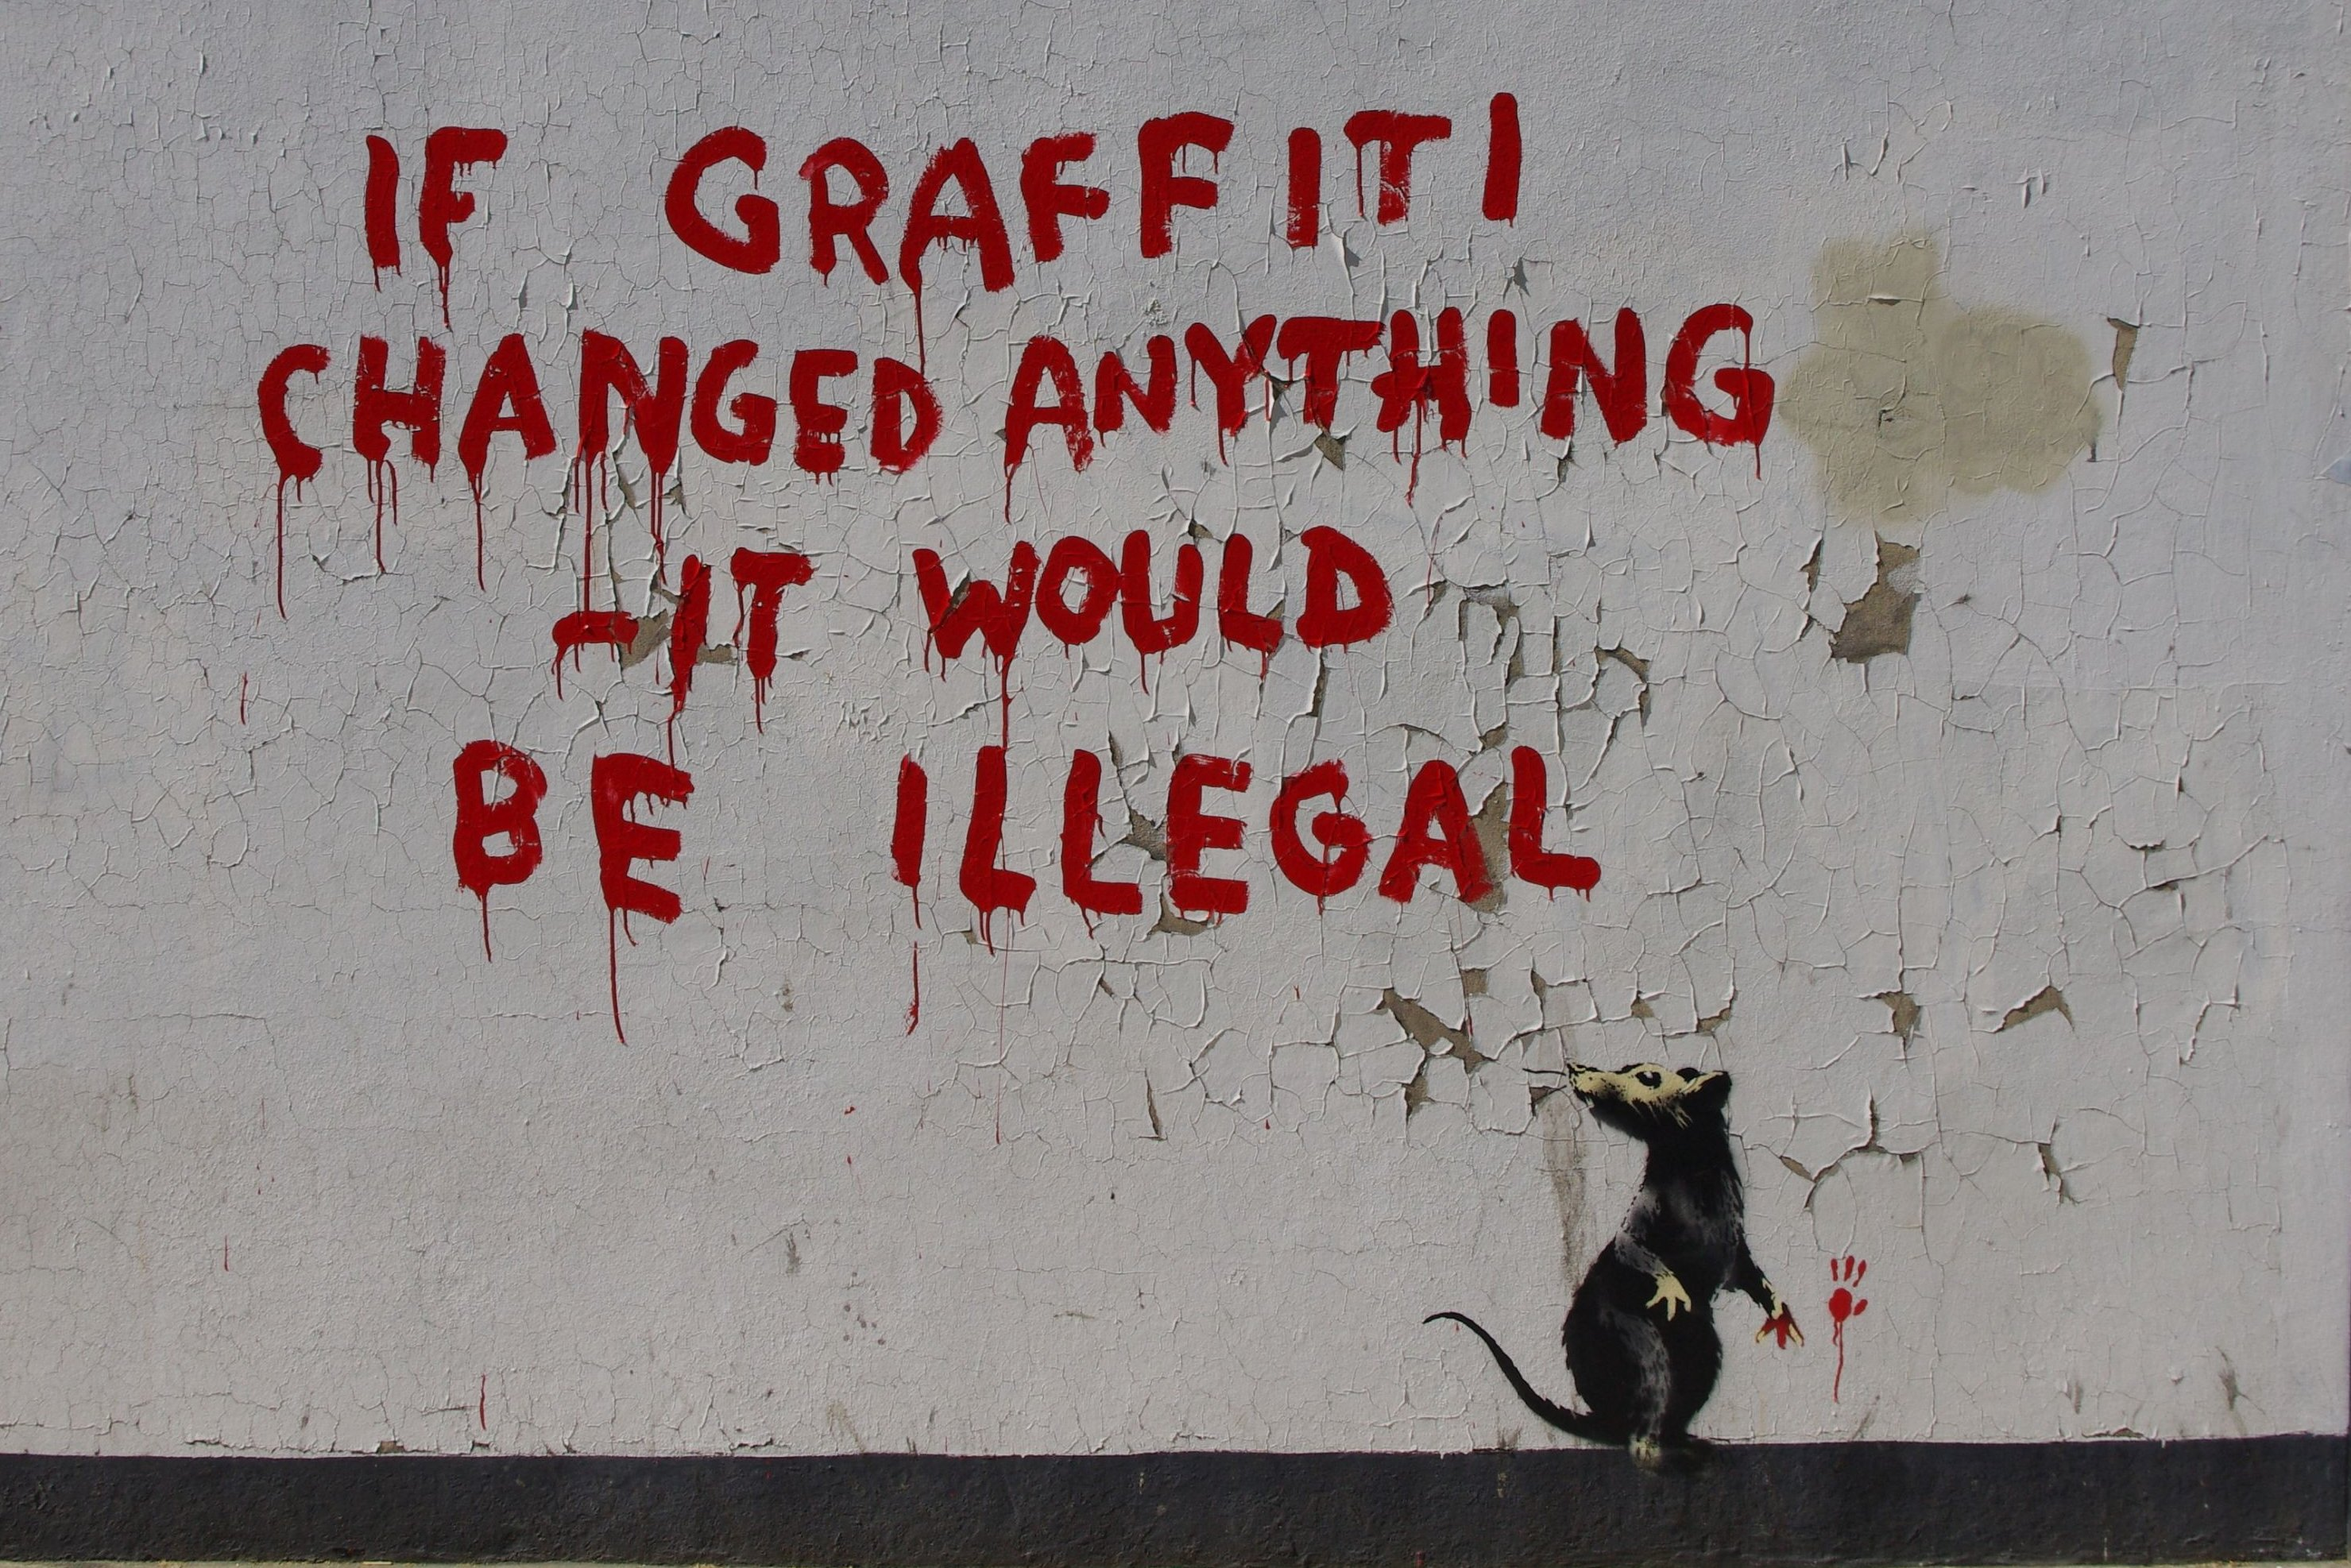 Banksy's rat daubs graffiti in Fitzrovia | Fitzrovia News